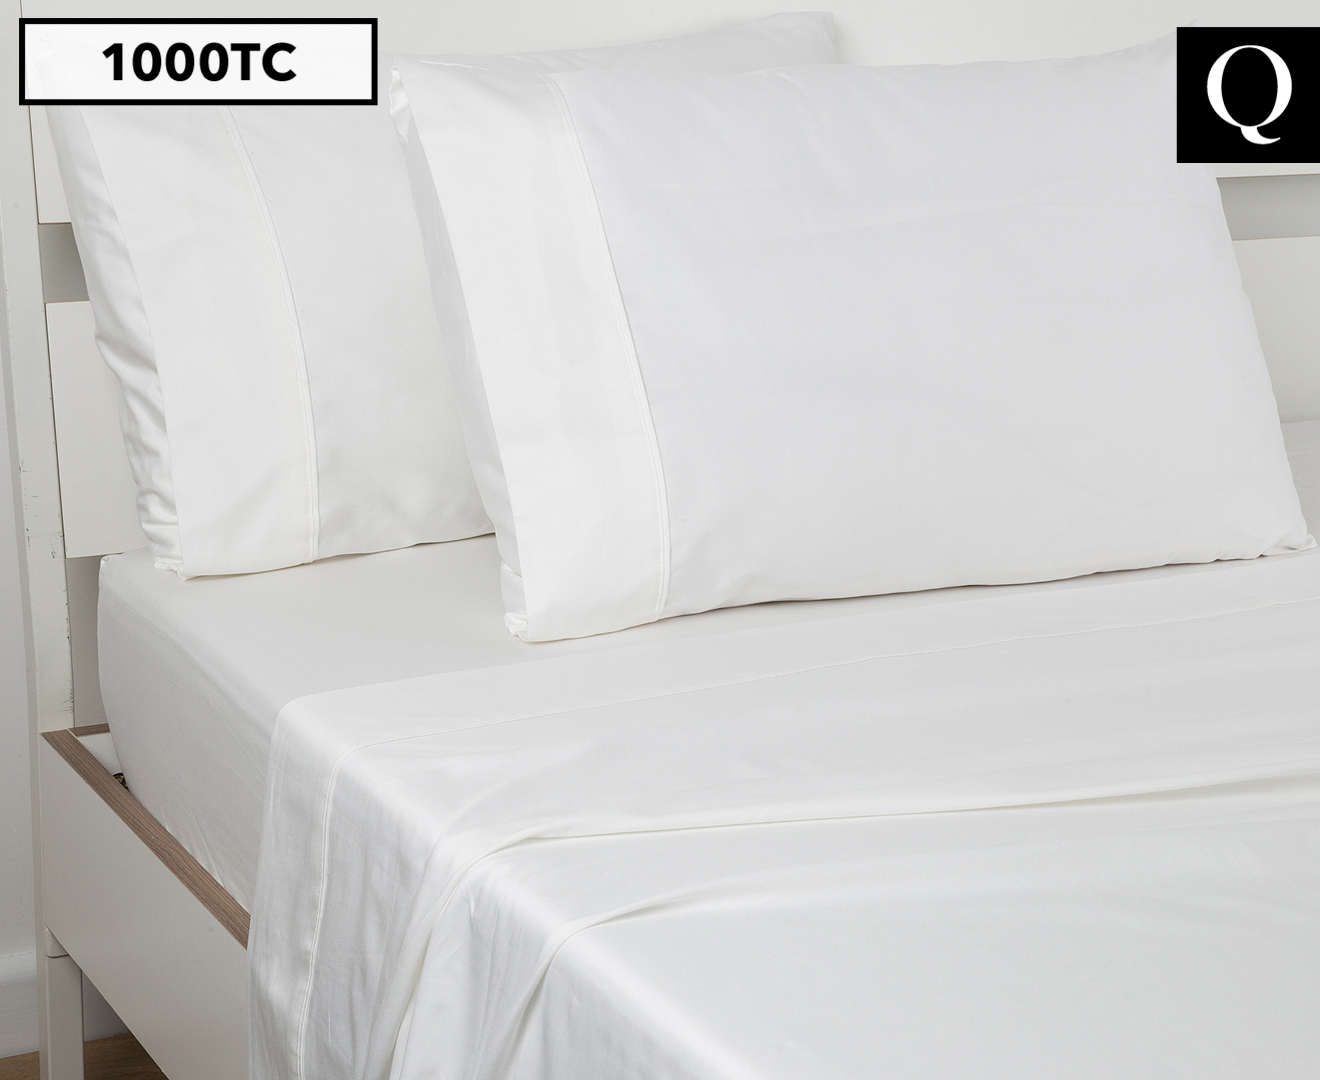 About white 1000tc egyptian cotton complete bedding collection sheet - Next Linen 1000tc 100 Egyptian Cotton Queen Bed Sheet Set White